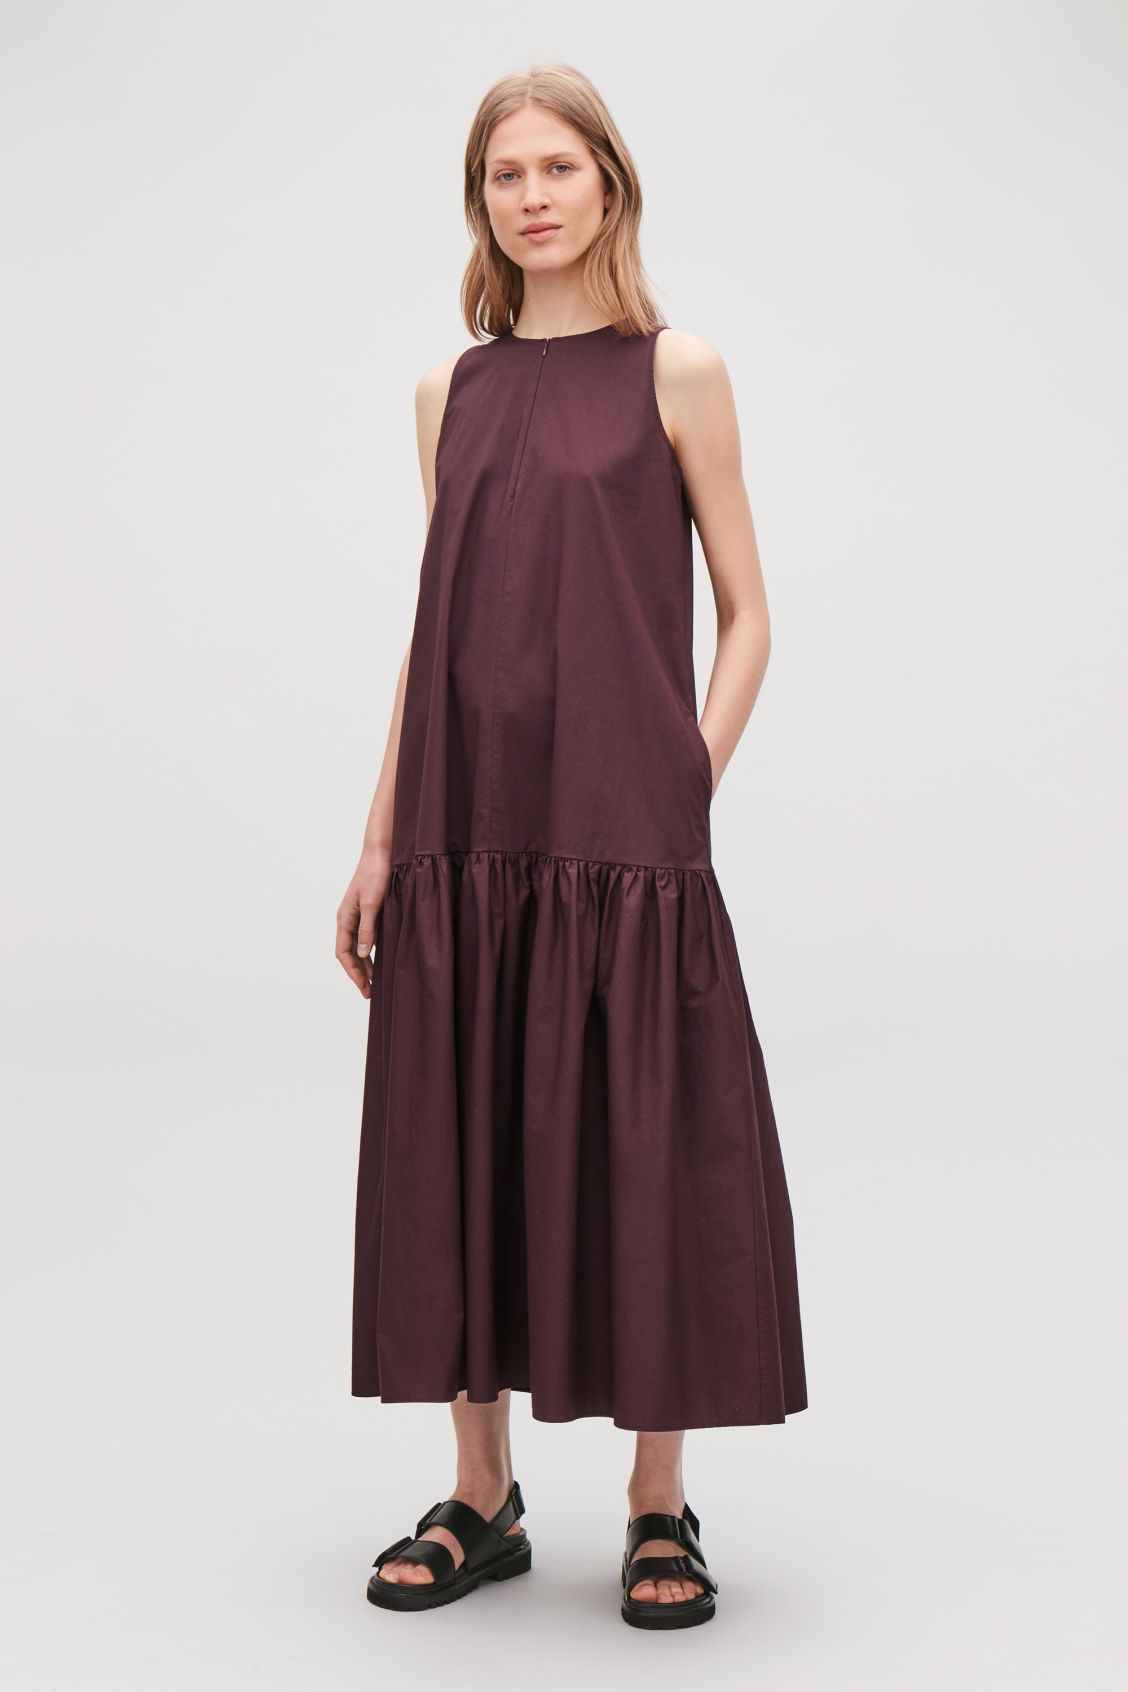 dc3cd5fd04be GATHERED A-LINE SLEEVELESS DRESS - Burgundy - Dresses - COS ...